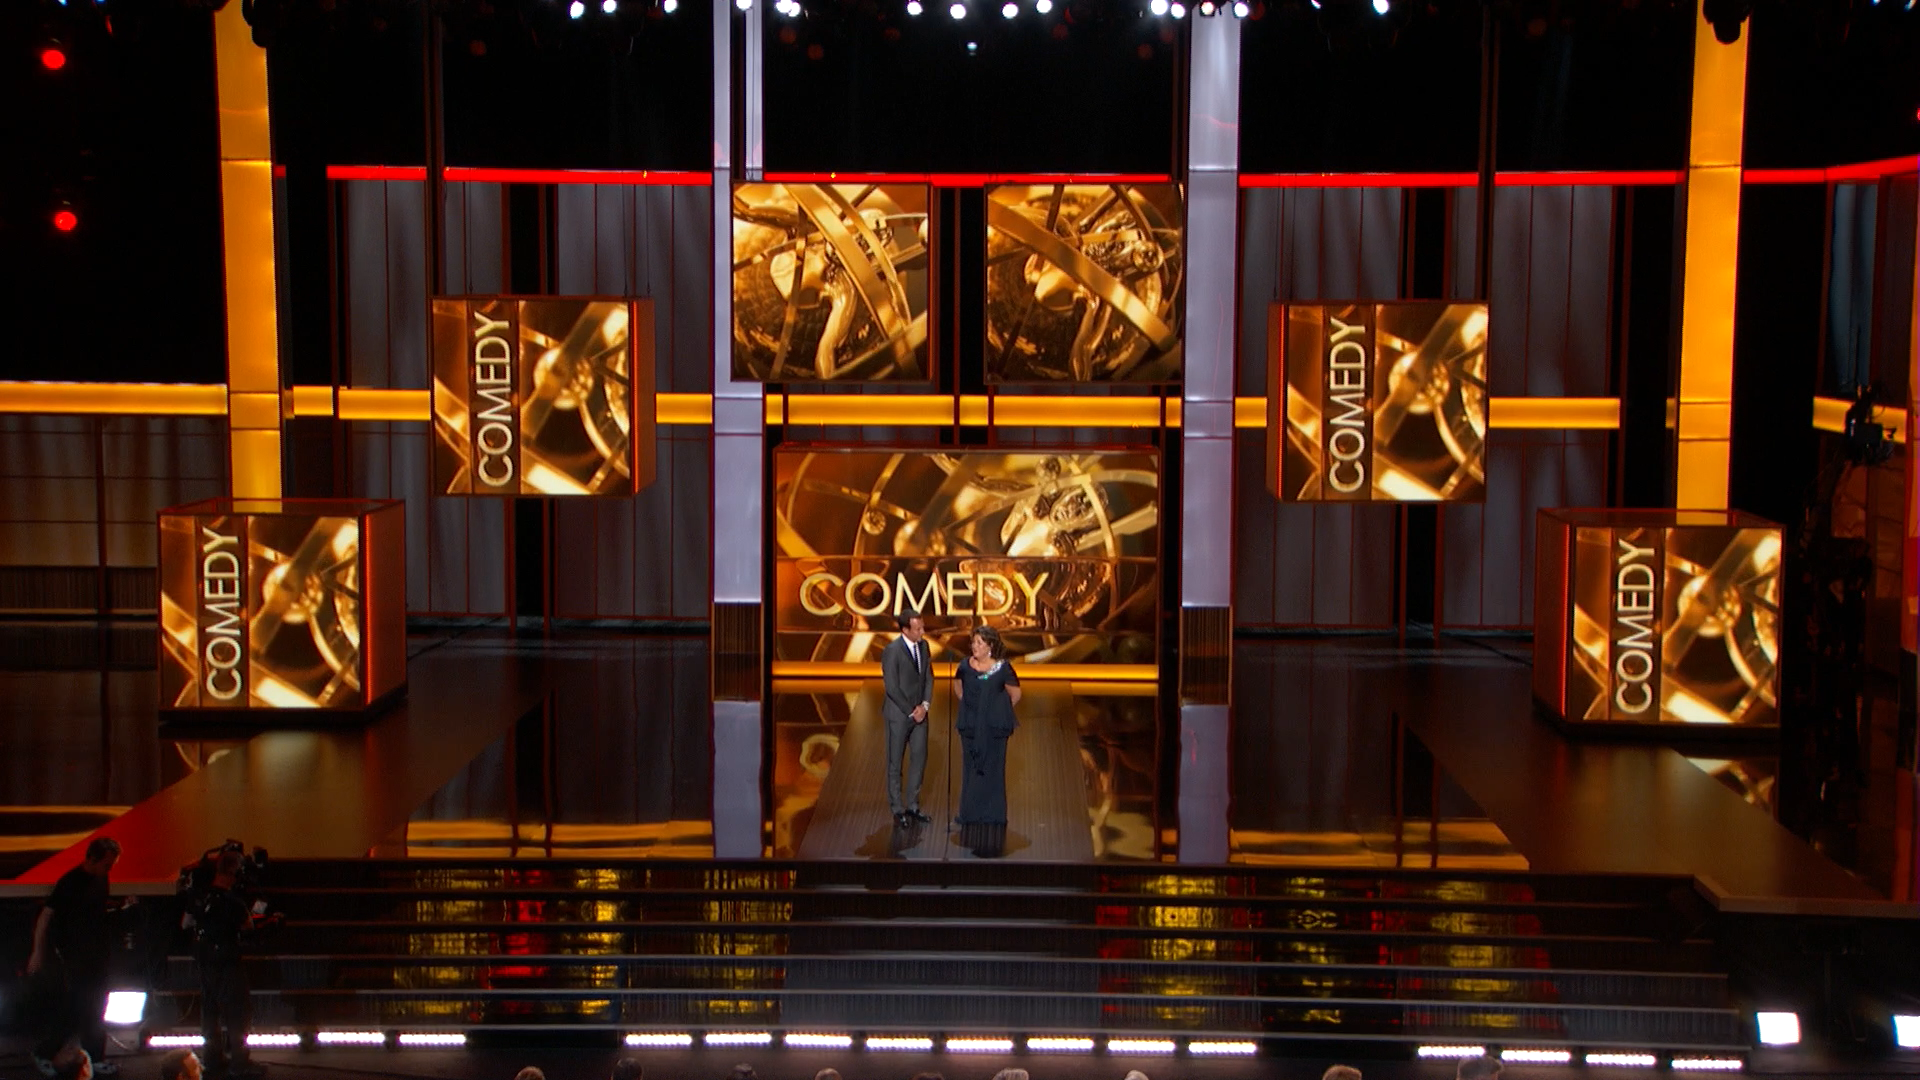 The 2013 EMMYS Ceremony